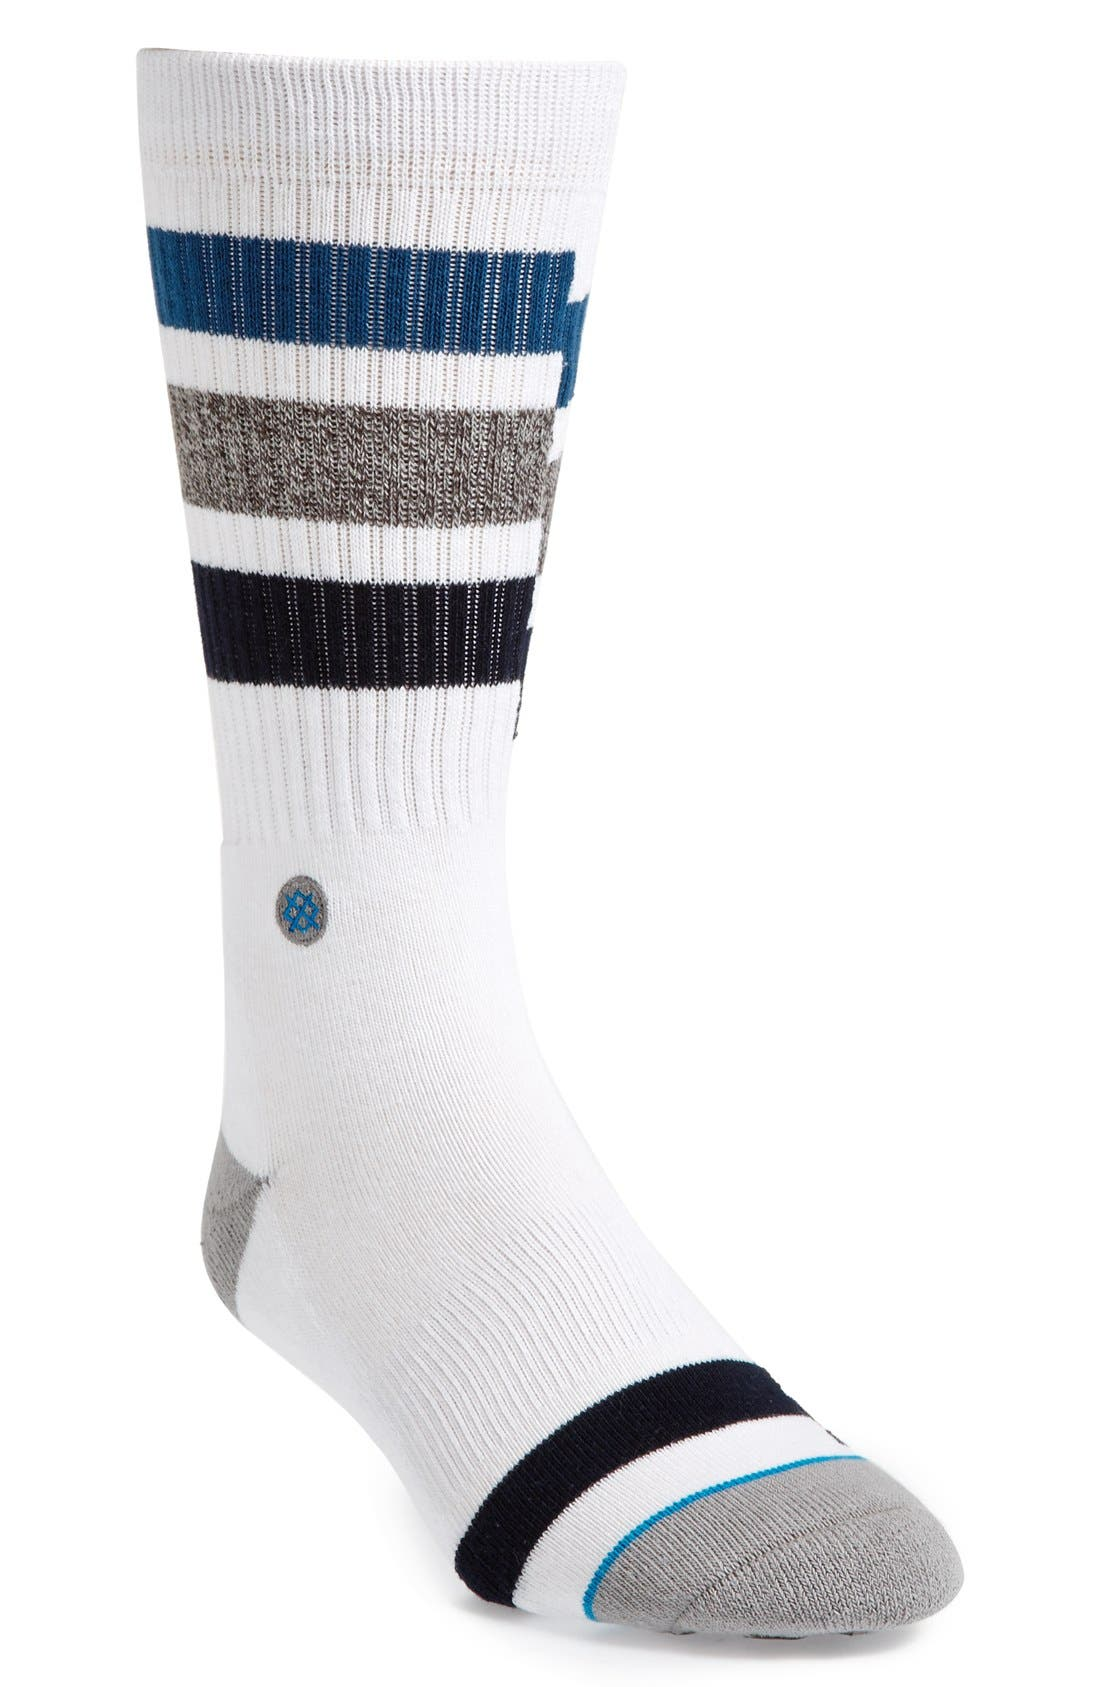 Main Image - Stance 'Abbott' Socks